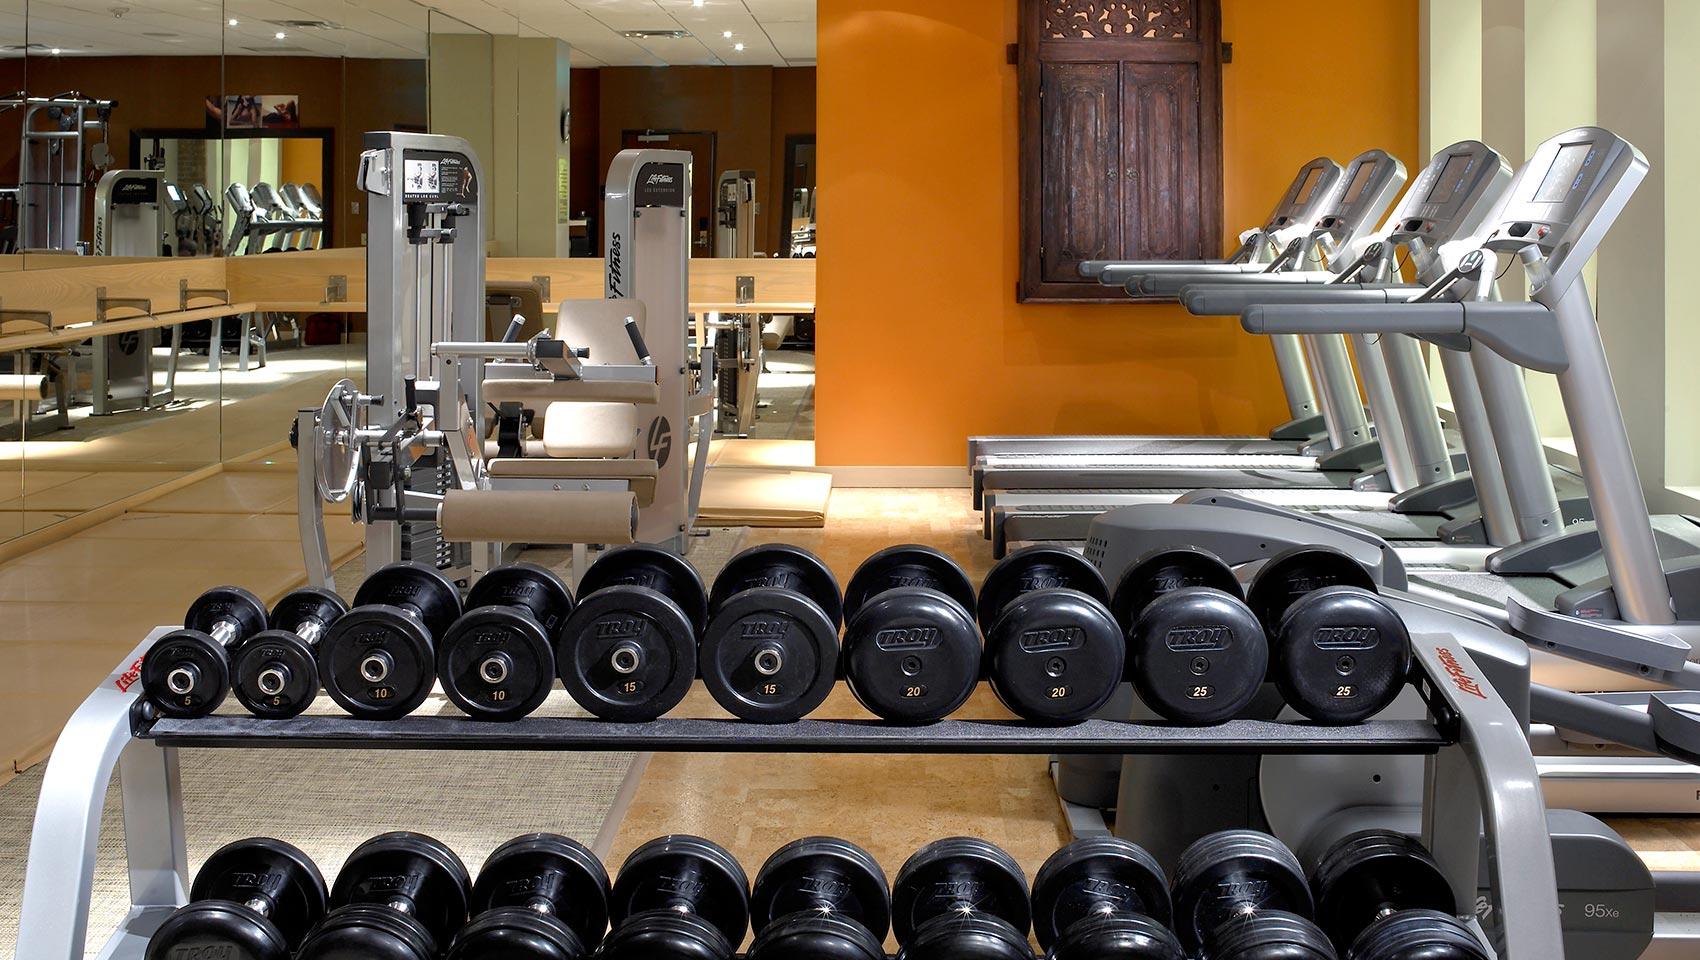 kimpton palomar fitness center